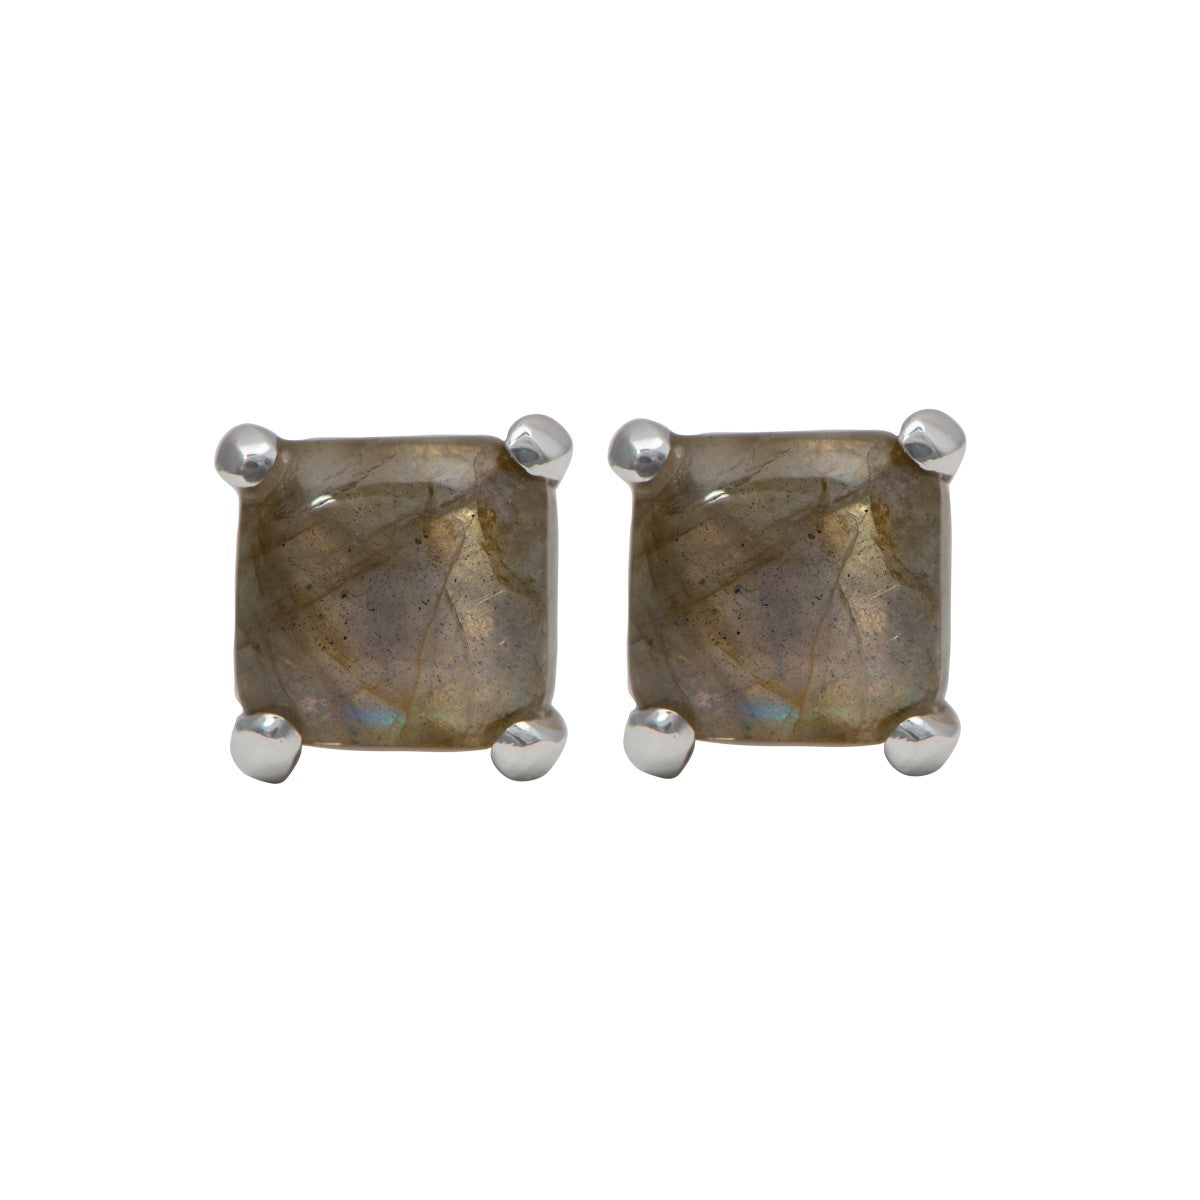 Square Cabochon Labradorite Stud Earrings in Sterling Silver